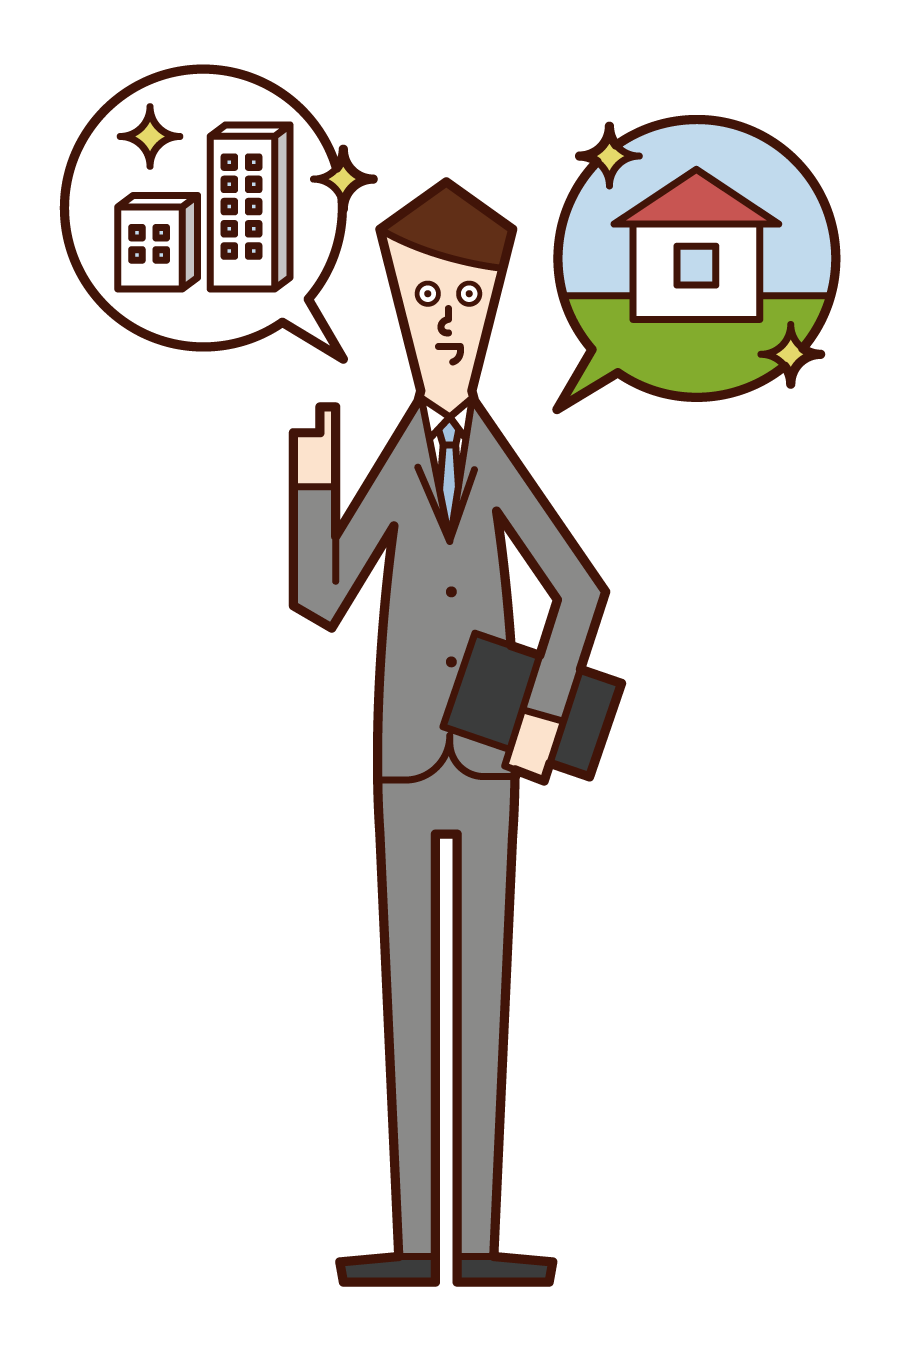 Illustration of a person (man) who is a building sales and real estate business